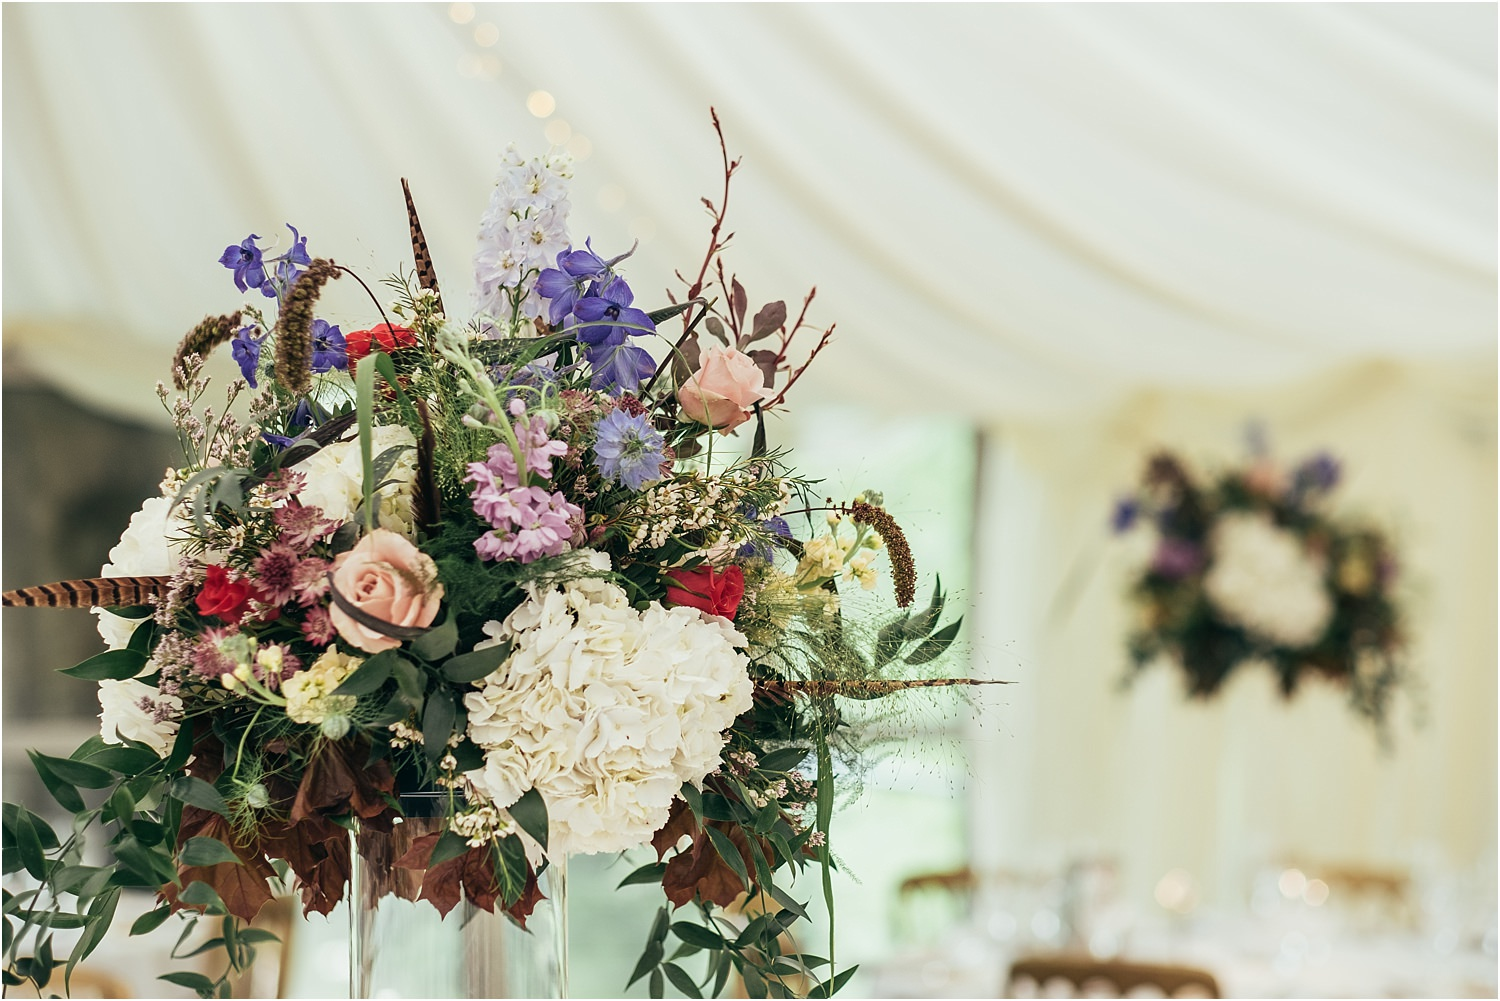 Wedding flowers by The Flower Shop of Clitheroe at Trough of Bowland wedding